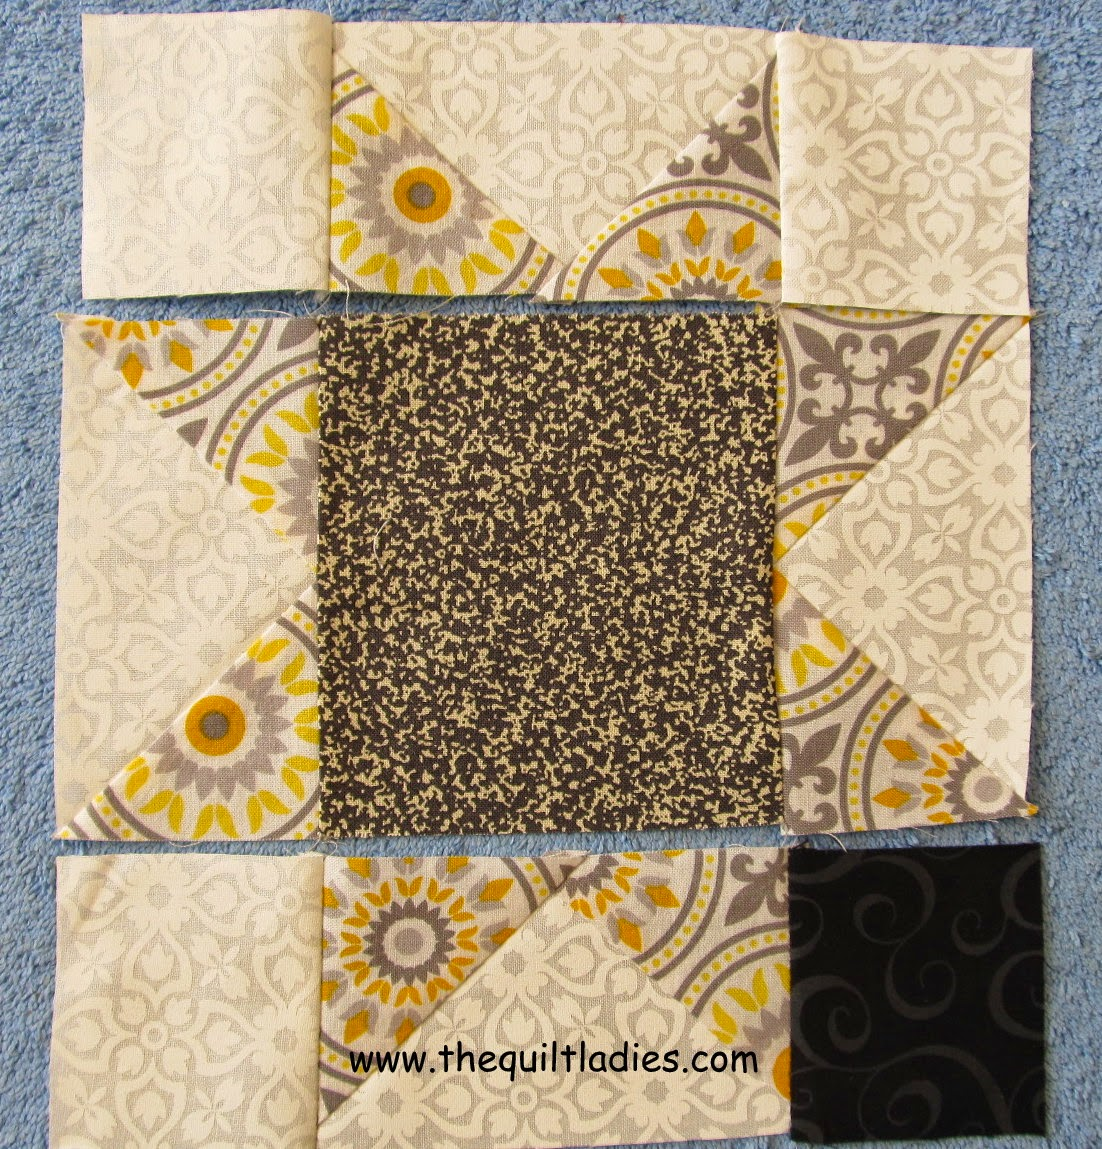 Star quilt pattern block in yellow and black